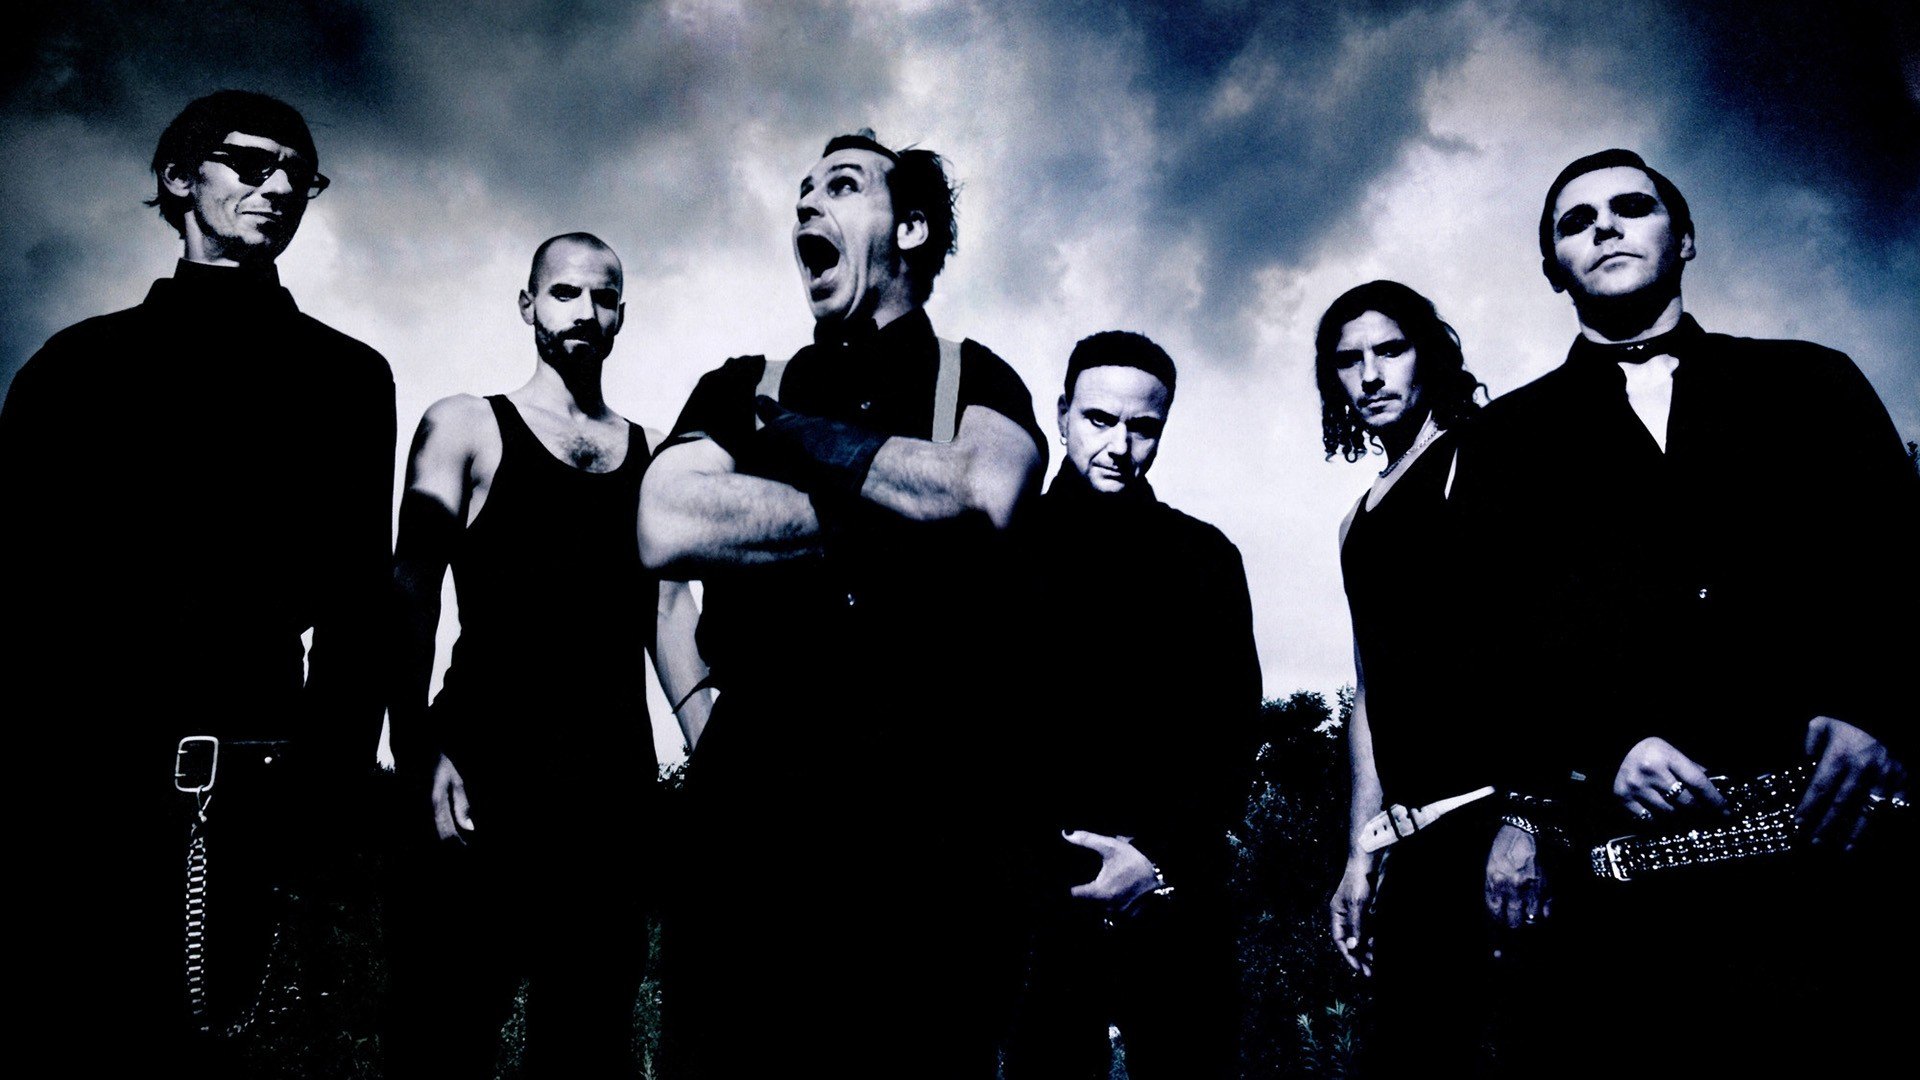 Rammstein Backgrounds 63 Pictures